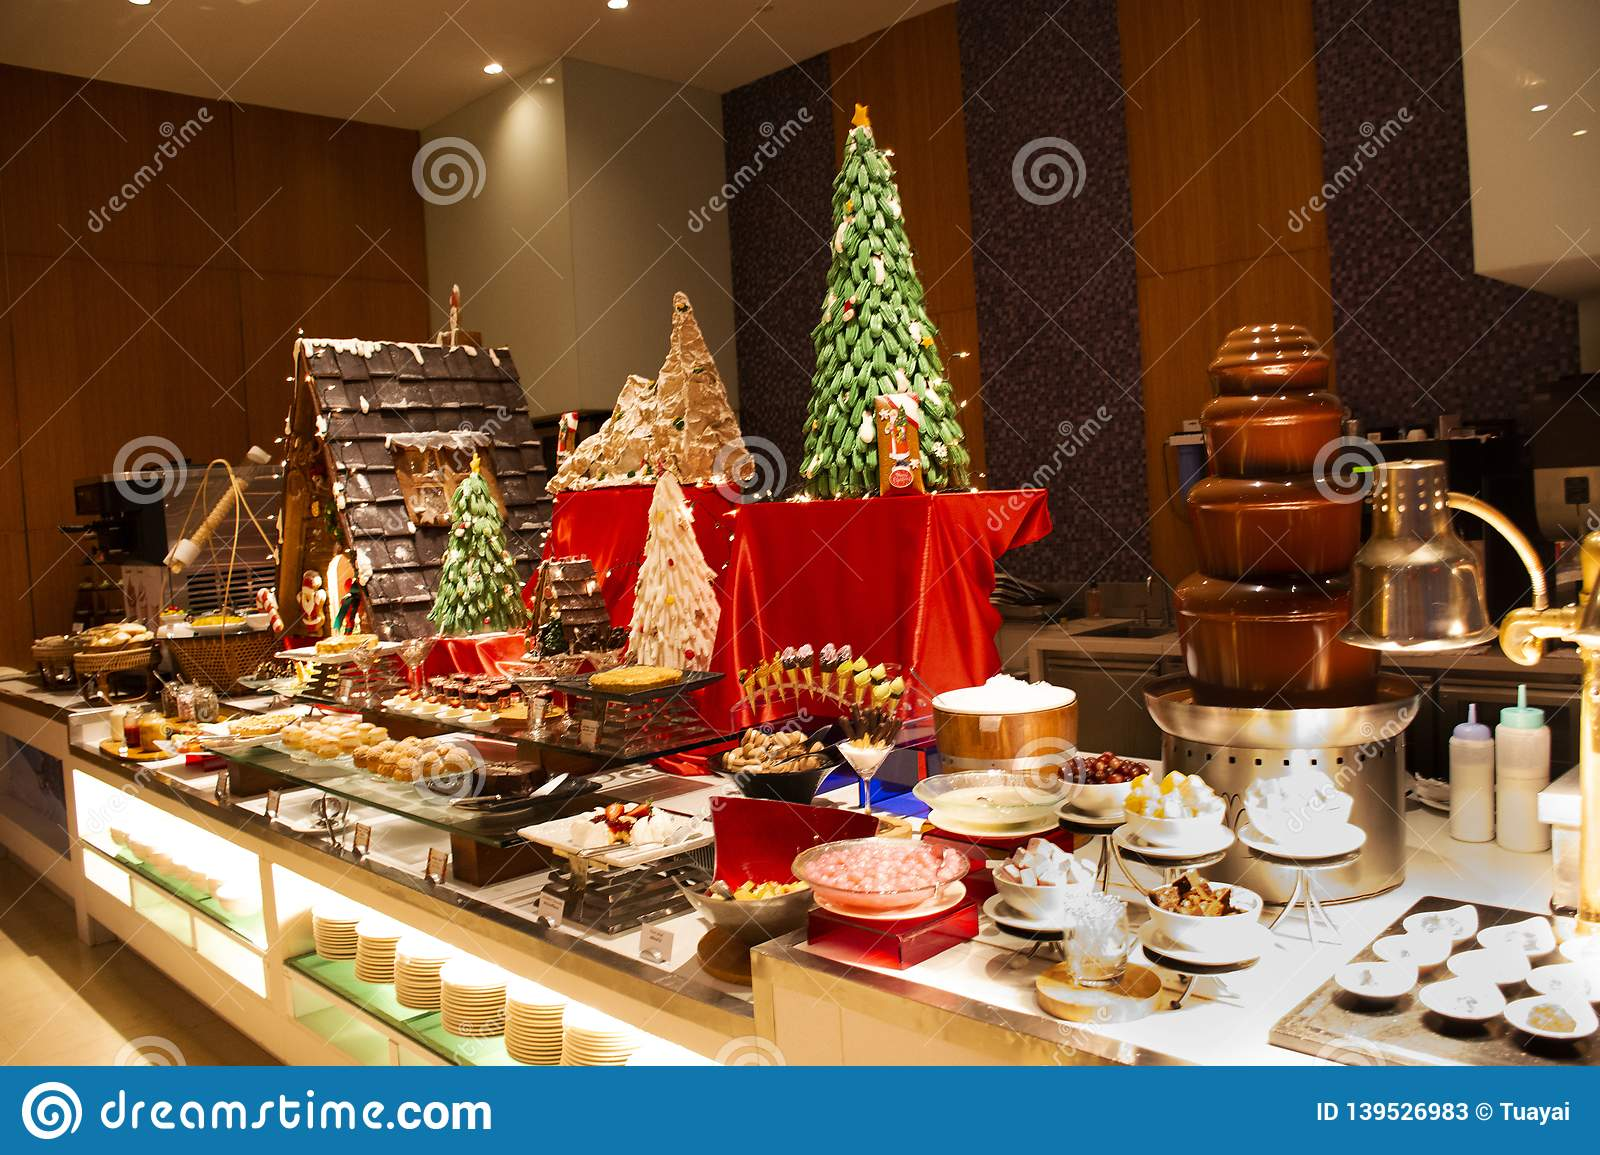 Remarkable Sweet Dessert Snack And Cakes Line In Food Buffet Service Download Free Architecture Designs Grimeyleaguecom